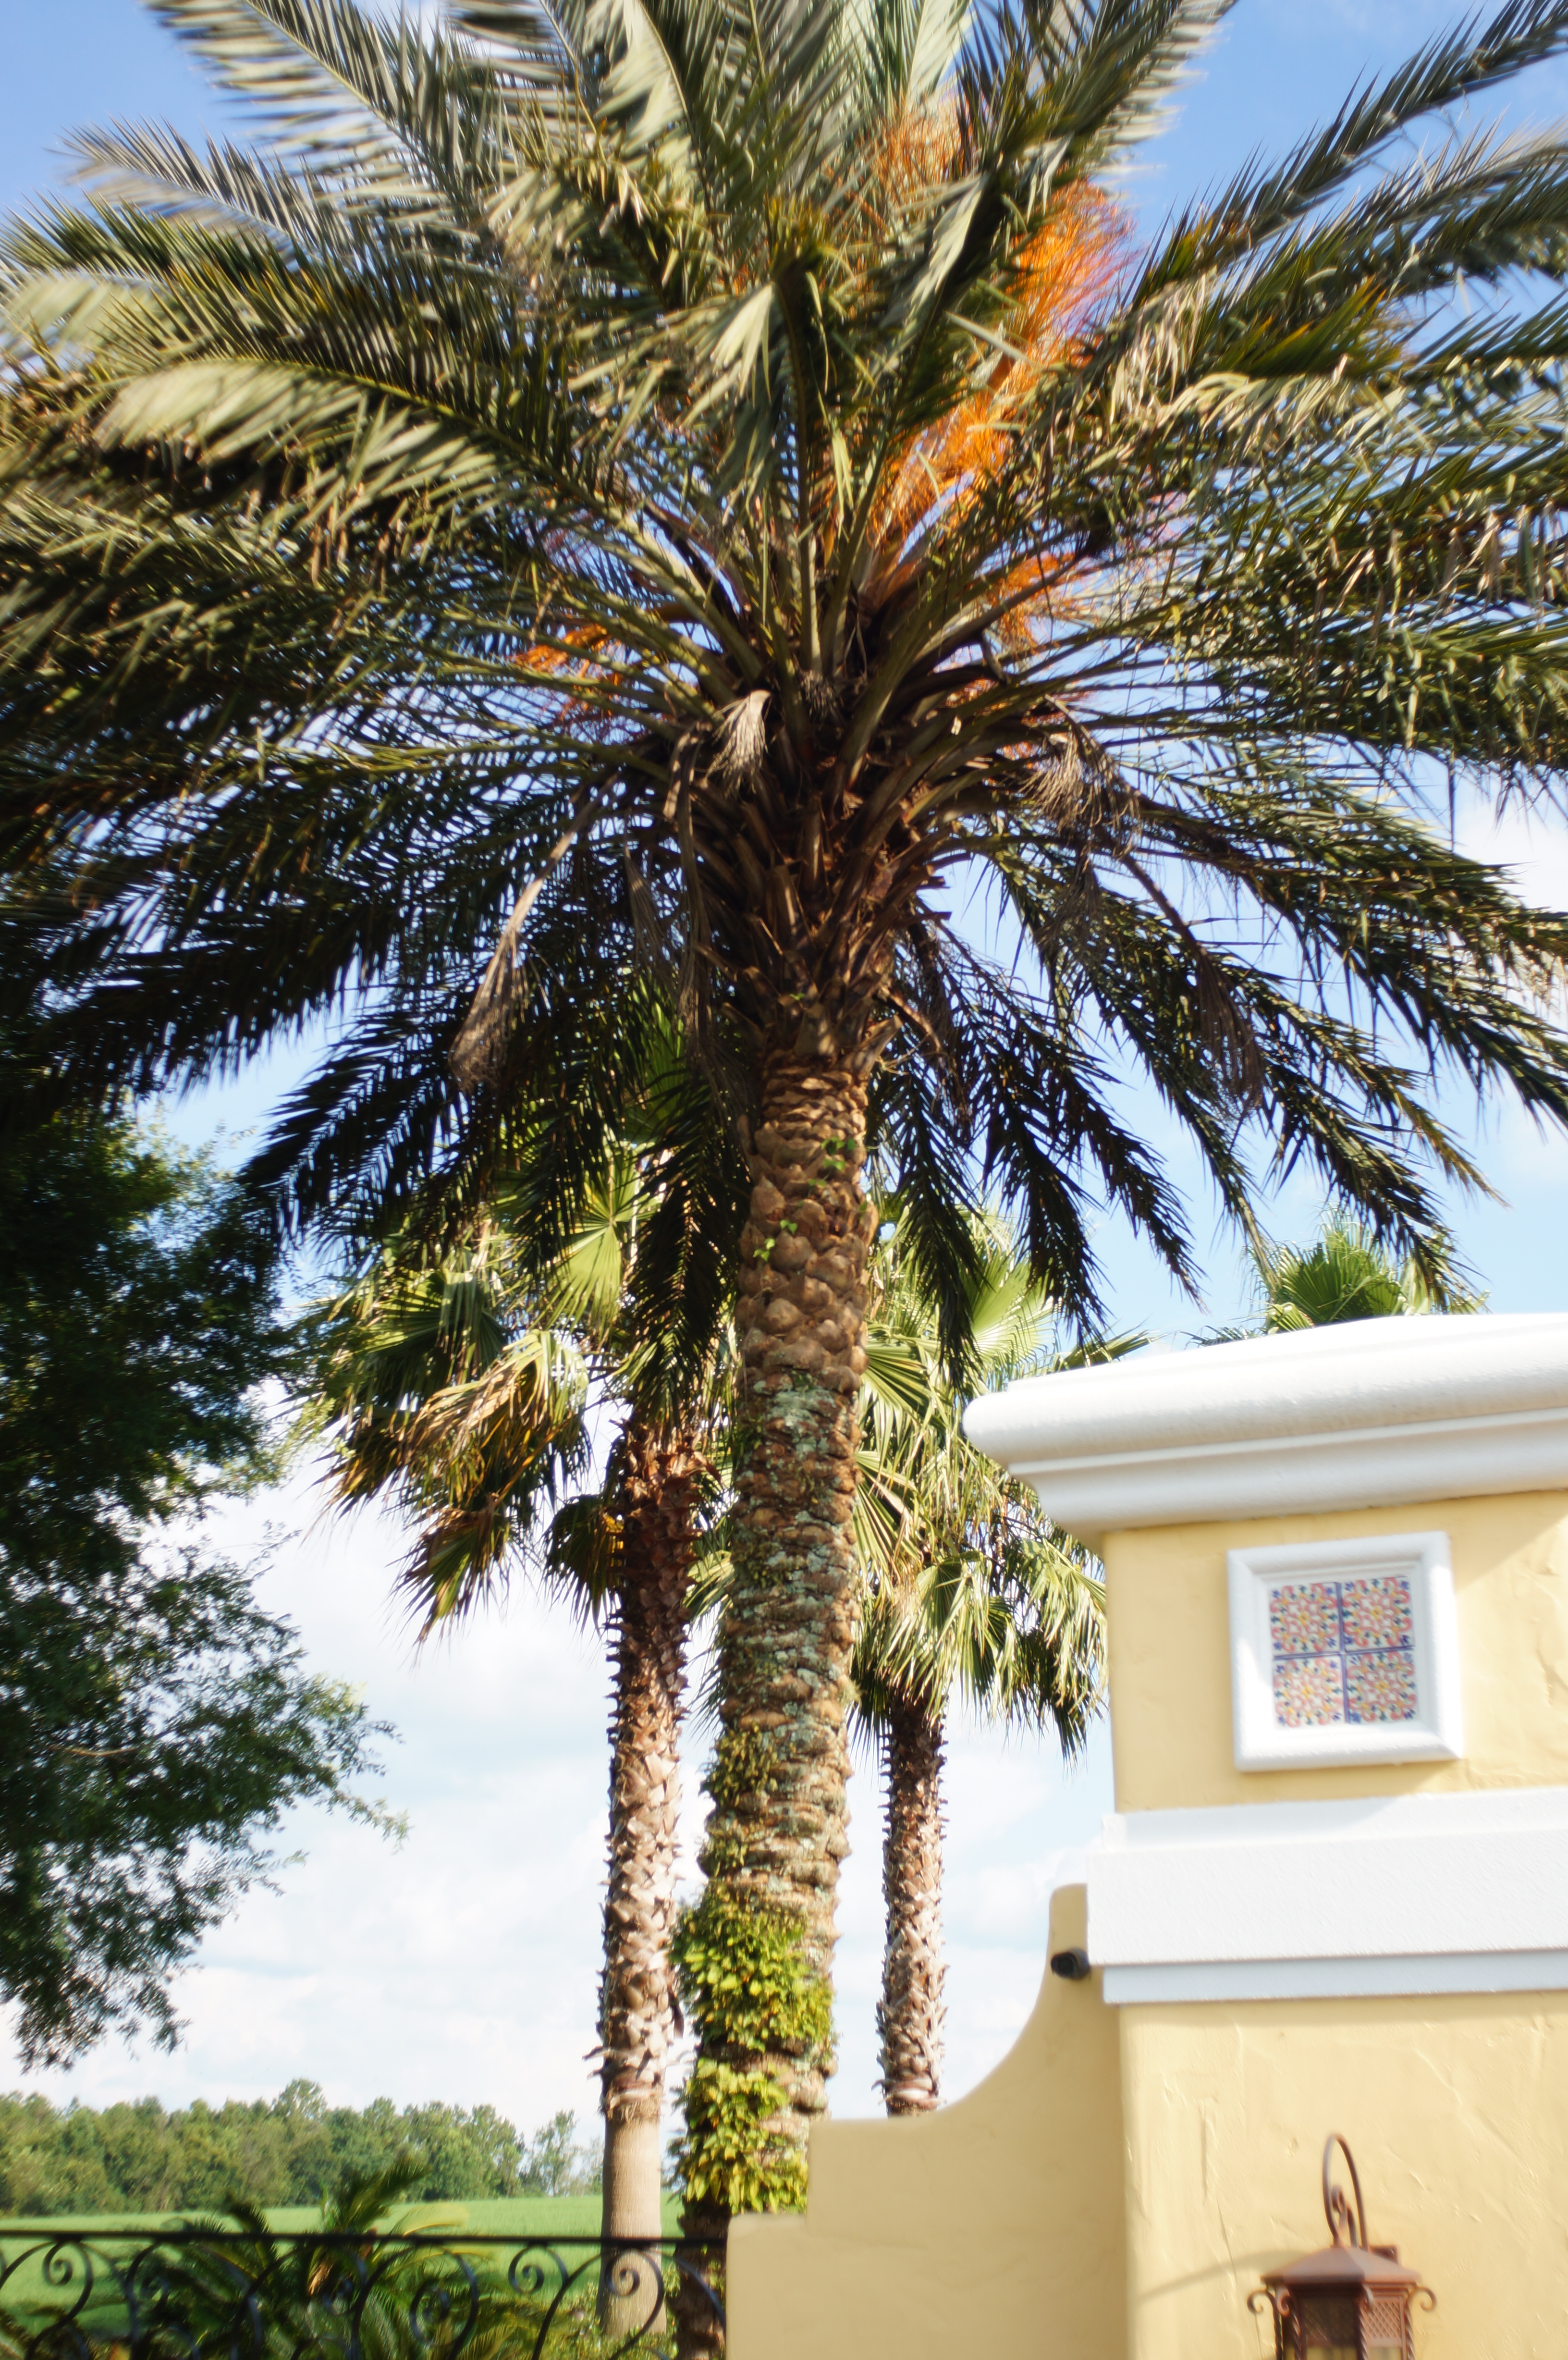 Considerable Life Healthy Medjool That Needs To Be Matched Palm Problems Days A Consulting Arborist Medjool Date Palms Sale California Medjool Date Palm Growth Rate houzz 01 Medjool Date Palm